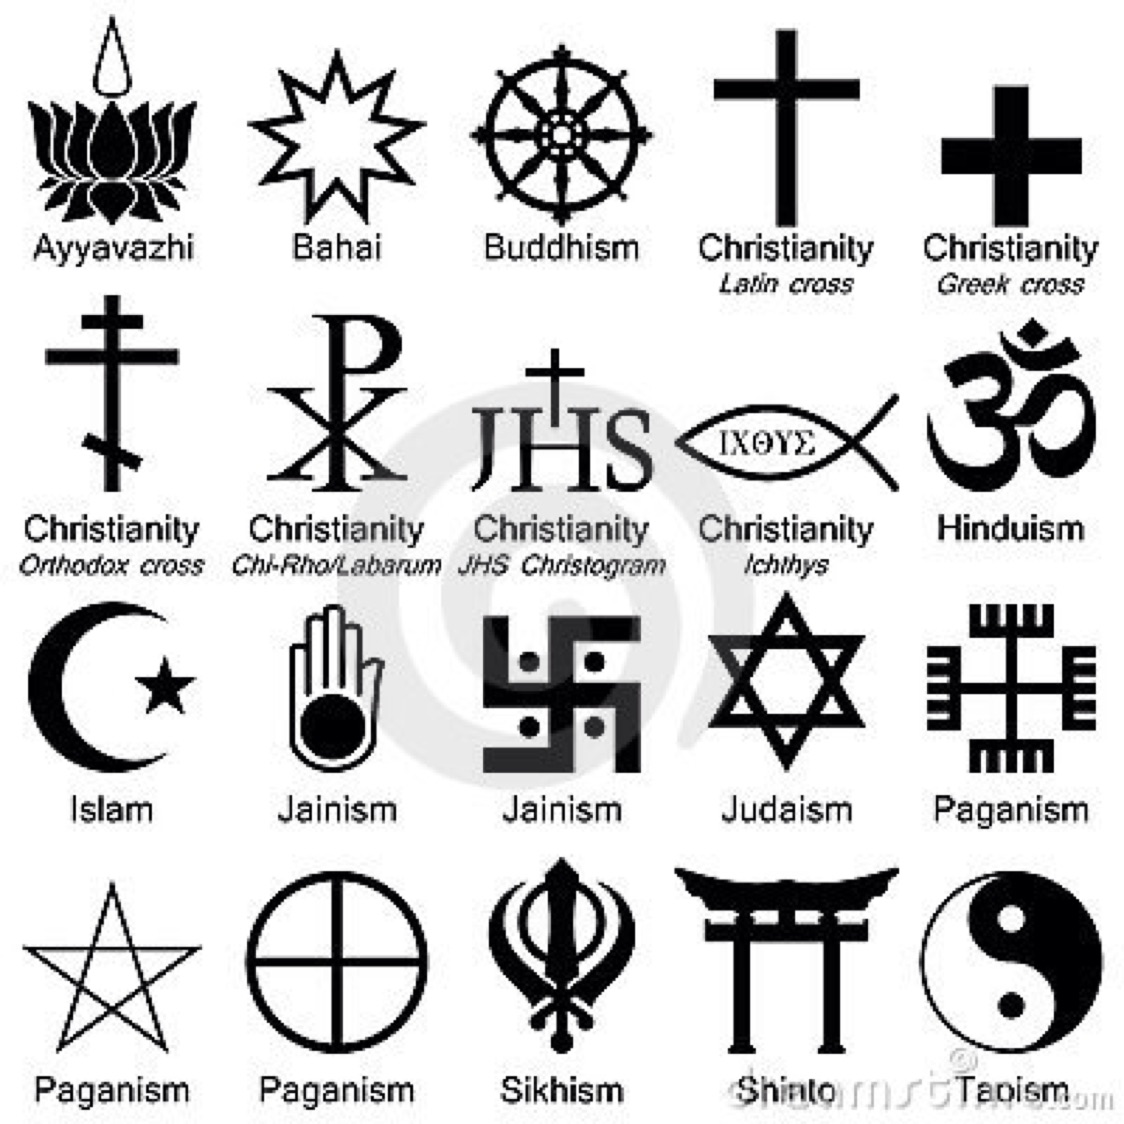 Religions of the world by kaleah thigpen biocorpaavc Choice Image